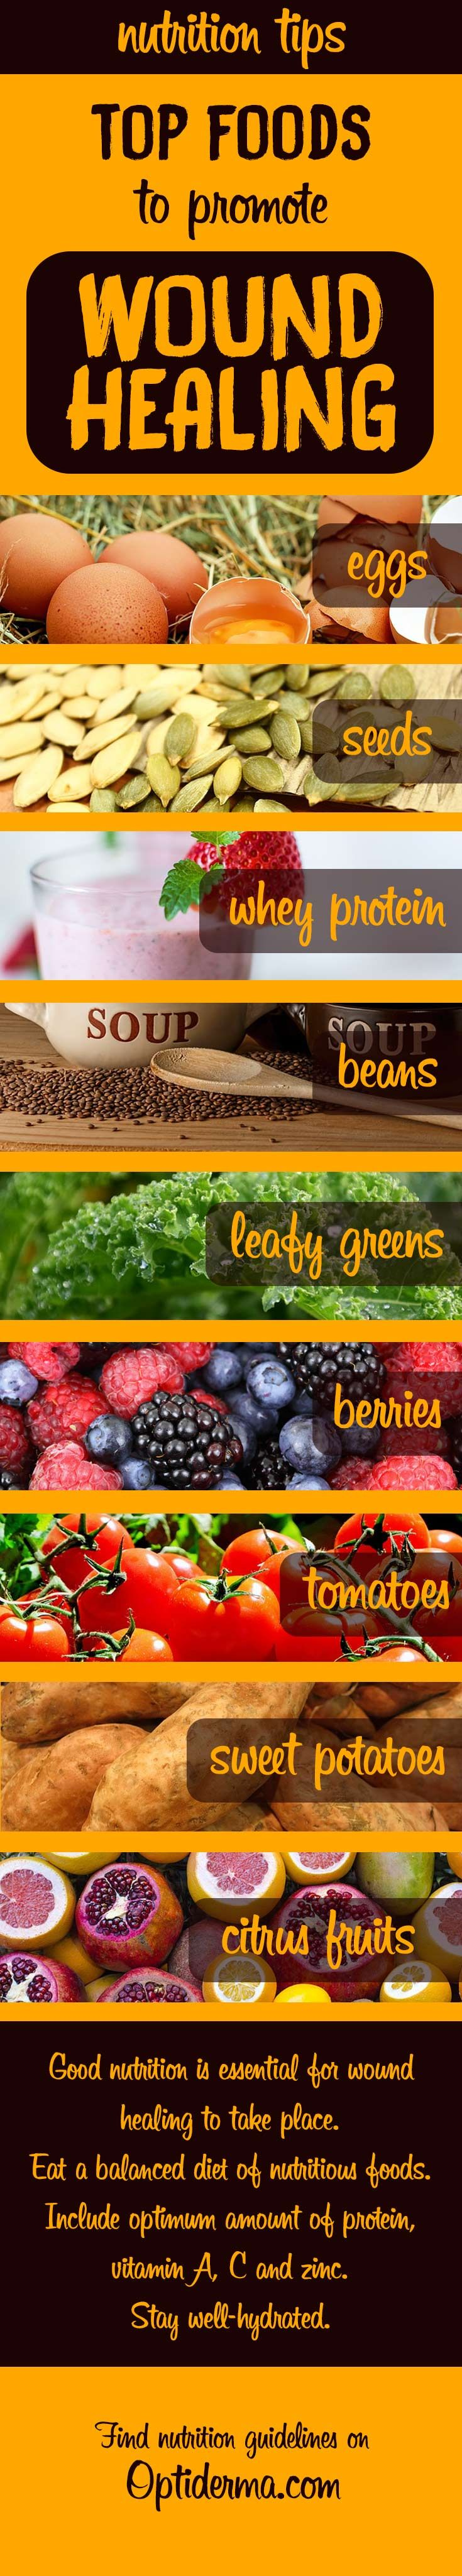 Do you have a wound that's limping along on the path to healing? Did you know that the foods you ingest makes a difference? For injured tissues to knit together, they need certain nutrients. In this post (https://www.optiderma.com/articles/wound-healing-foods-supplements/), I share foods and supplements for wounds to help expedite tissue repair. Picture your wound closing, and you're partly there! Good nutrition is essential for cut and wound healing.